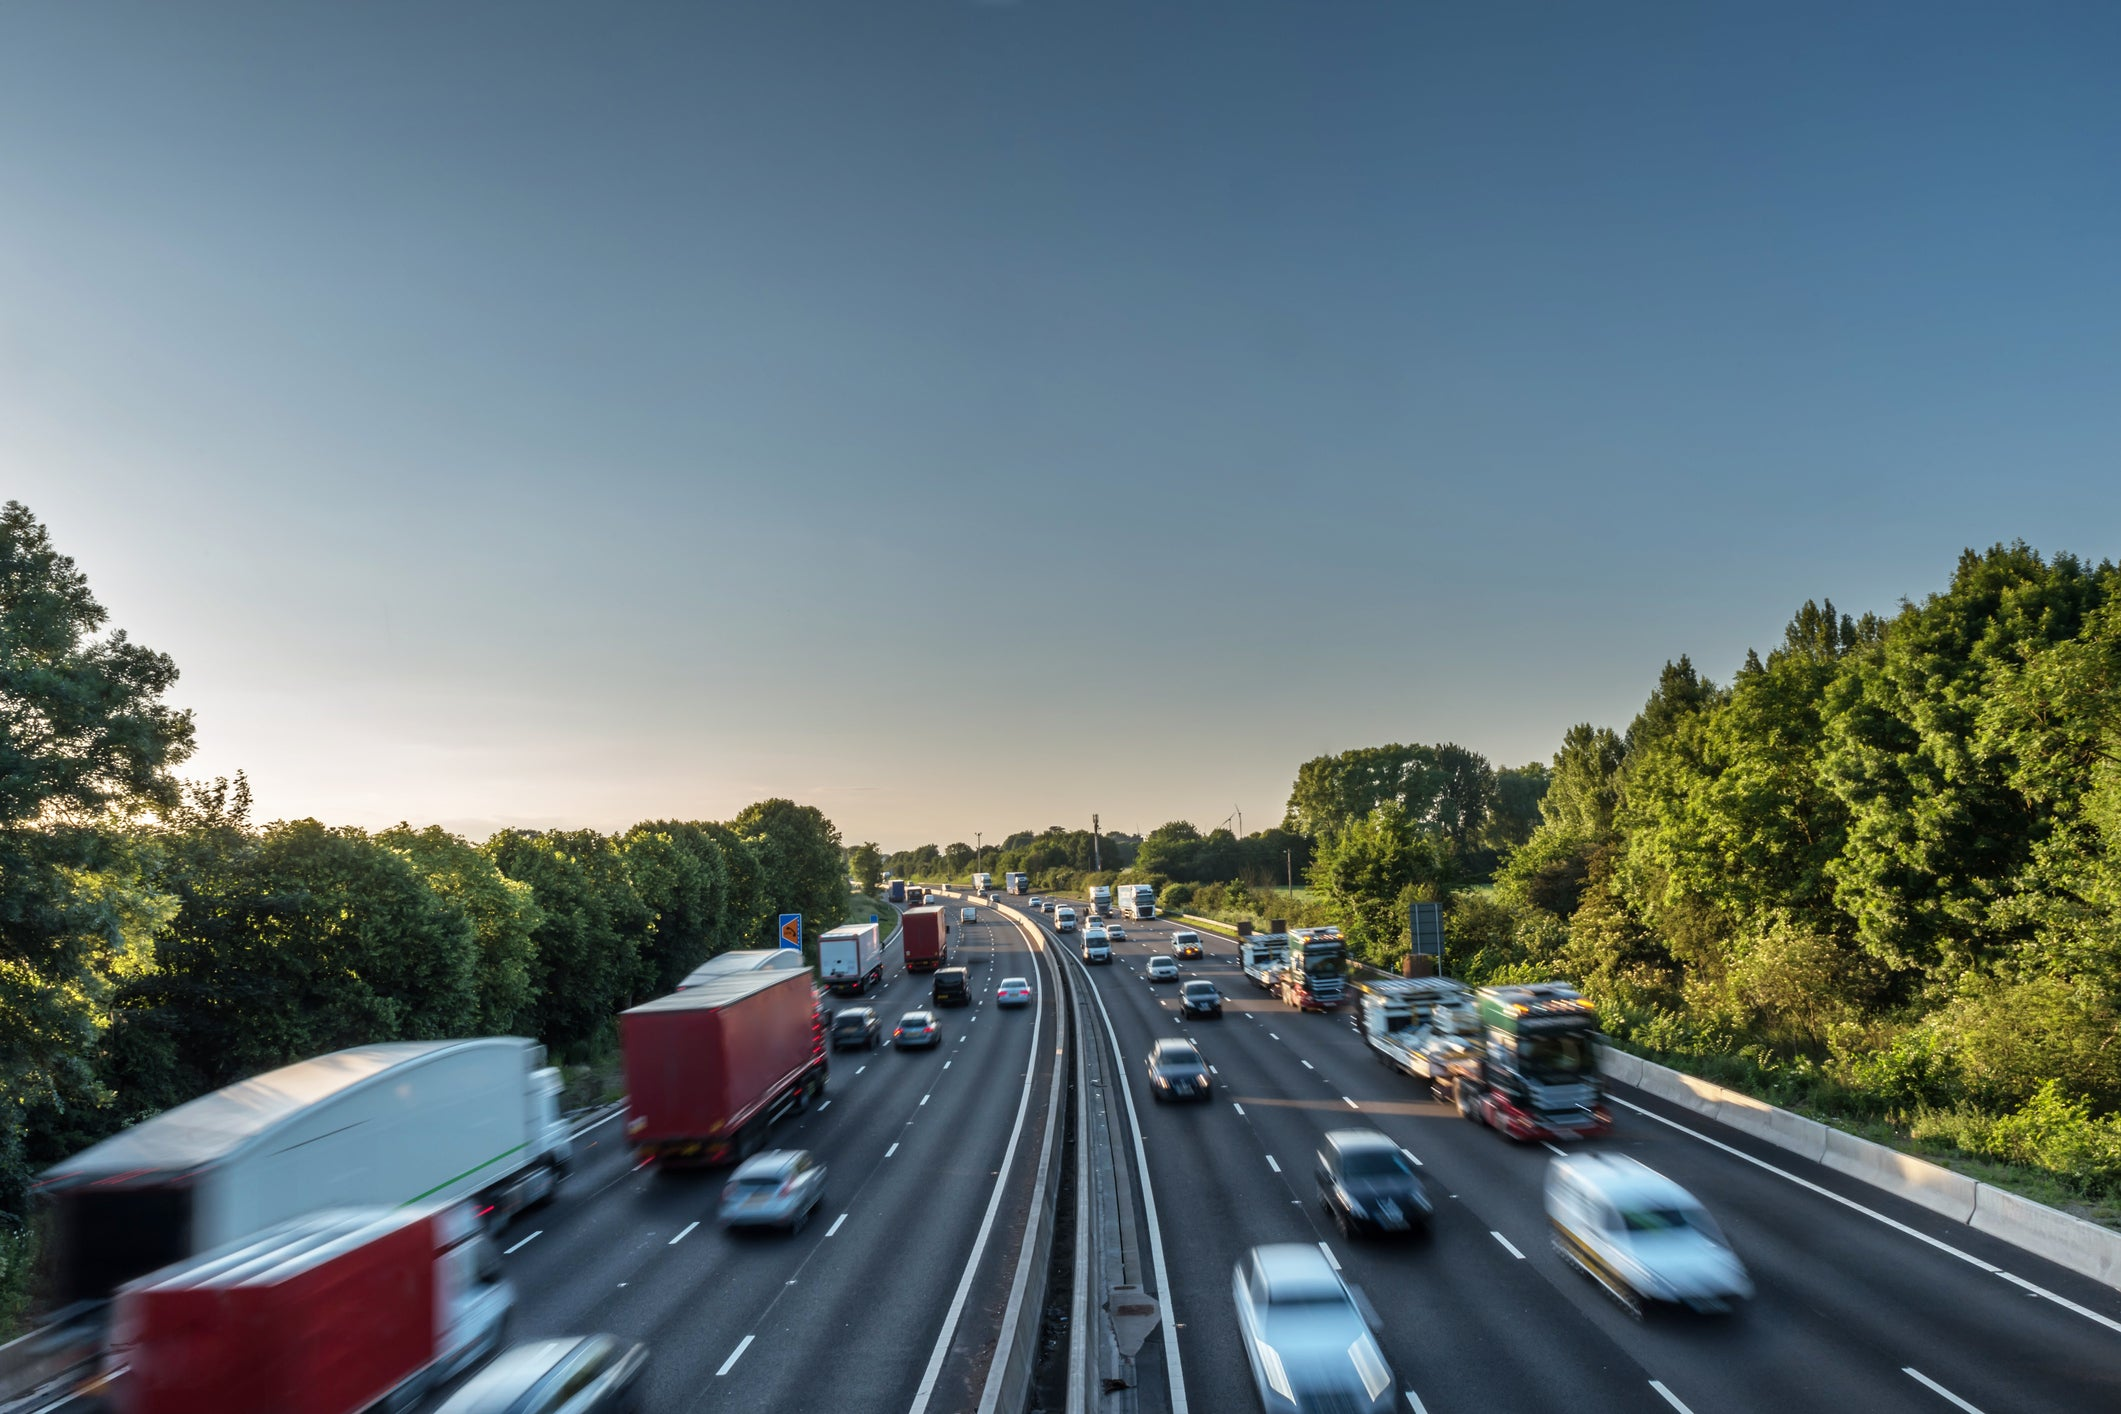 Bank Holiday Travel: Friday and Saturday busiest days on the roads